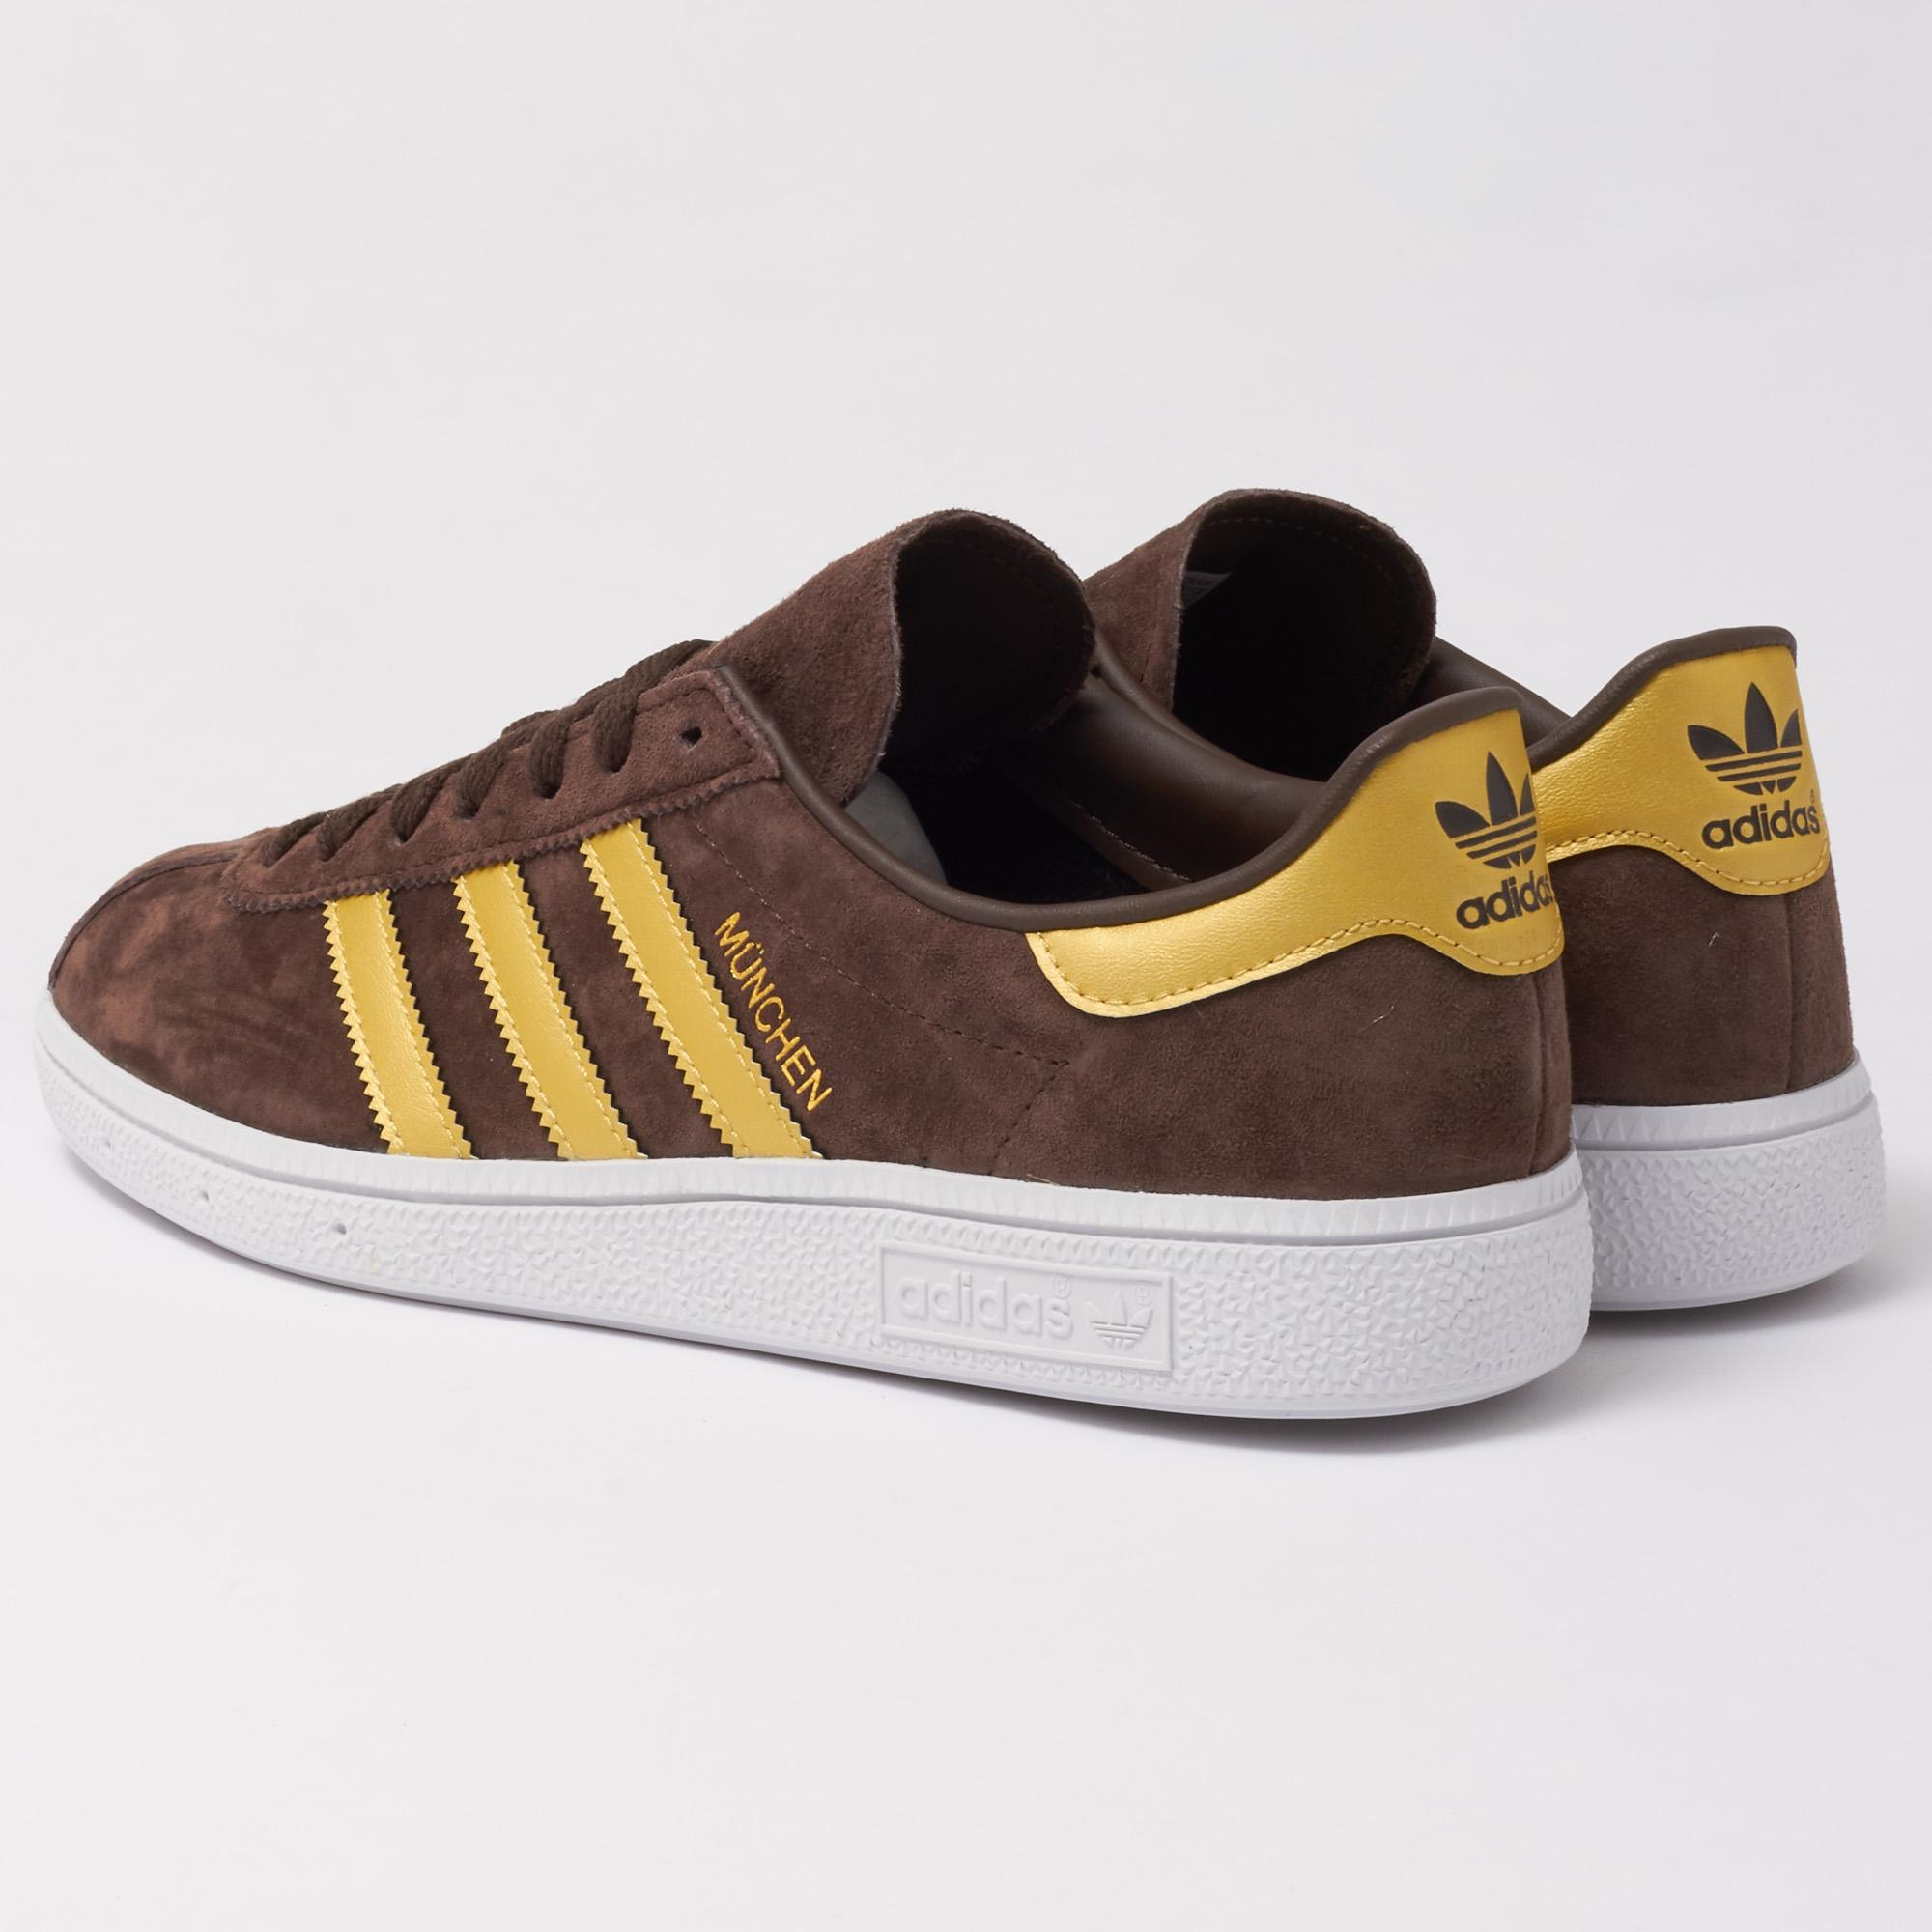 best sneakers 6a894 2d589 adidas Originals Munchen - Brown   Gold in Brown for Men - Lyst